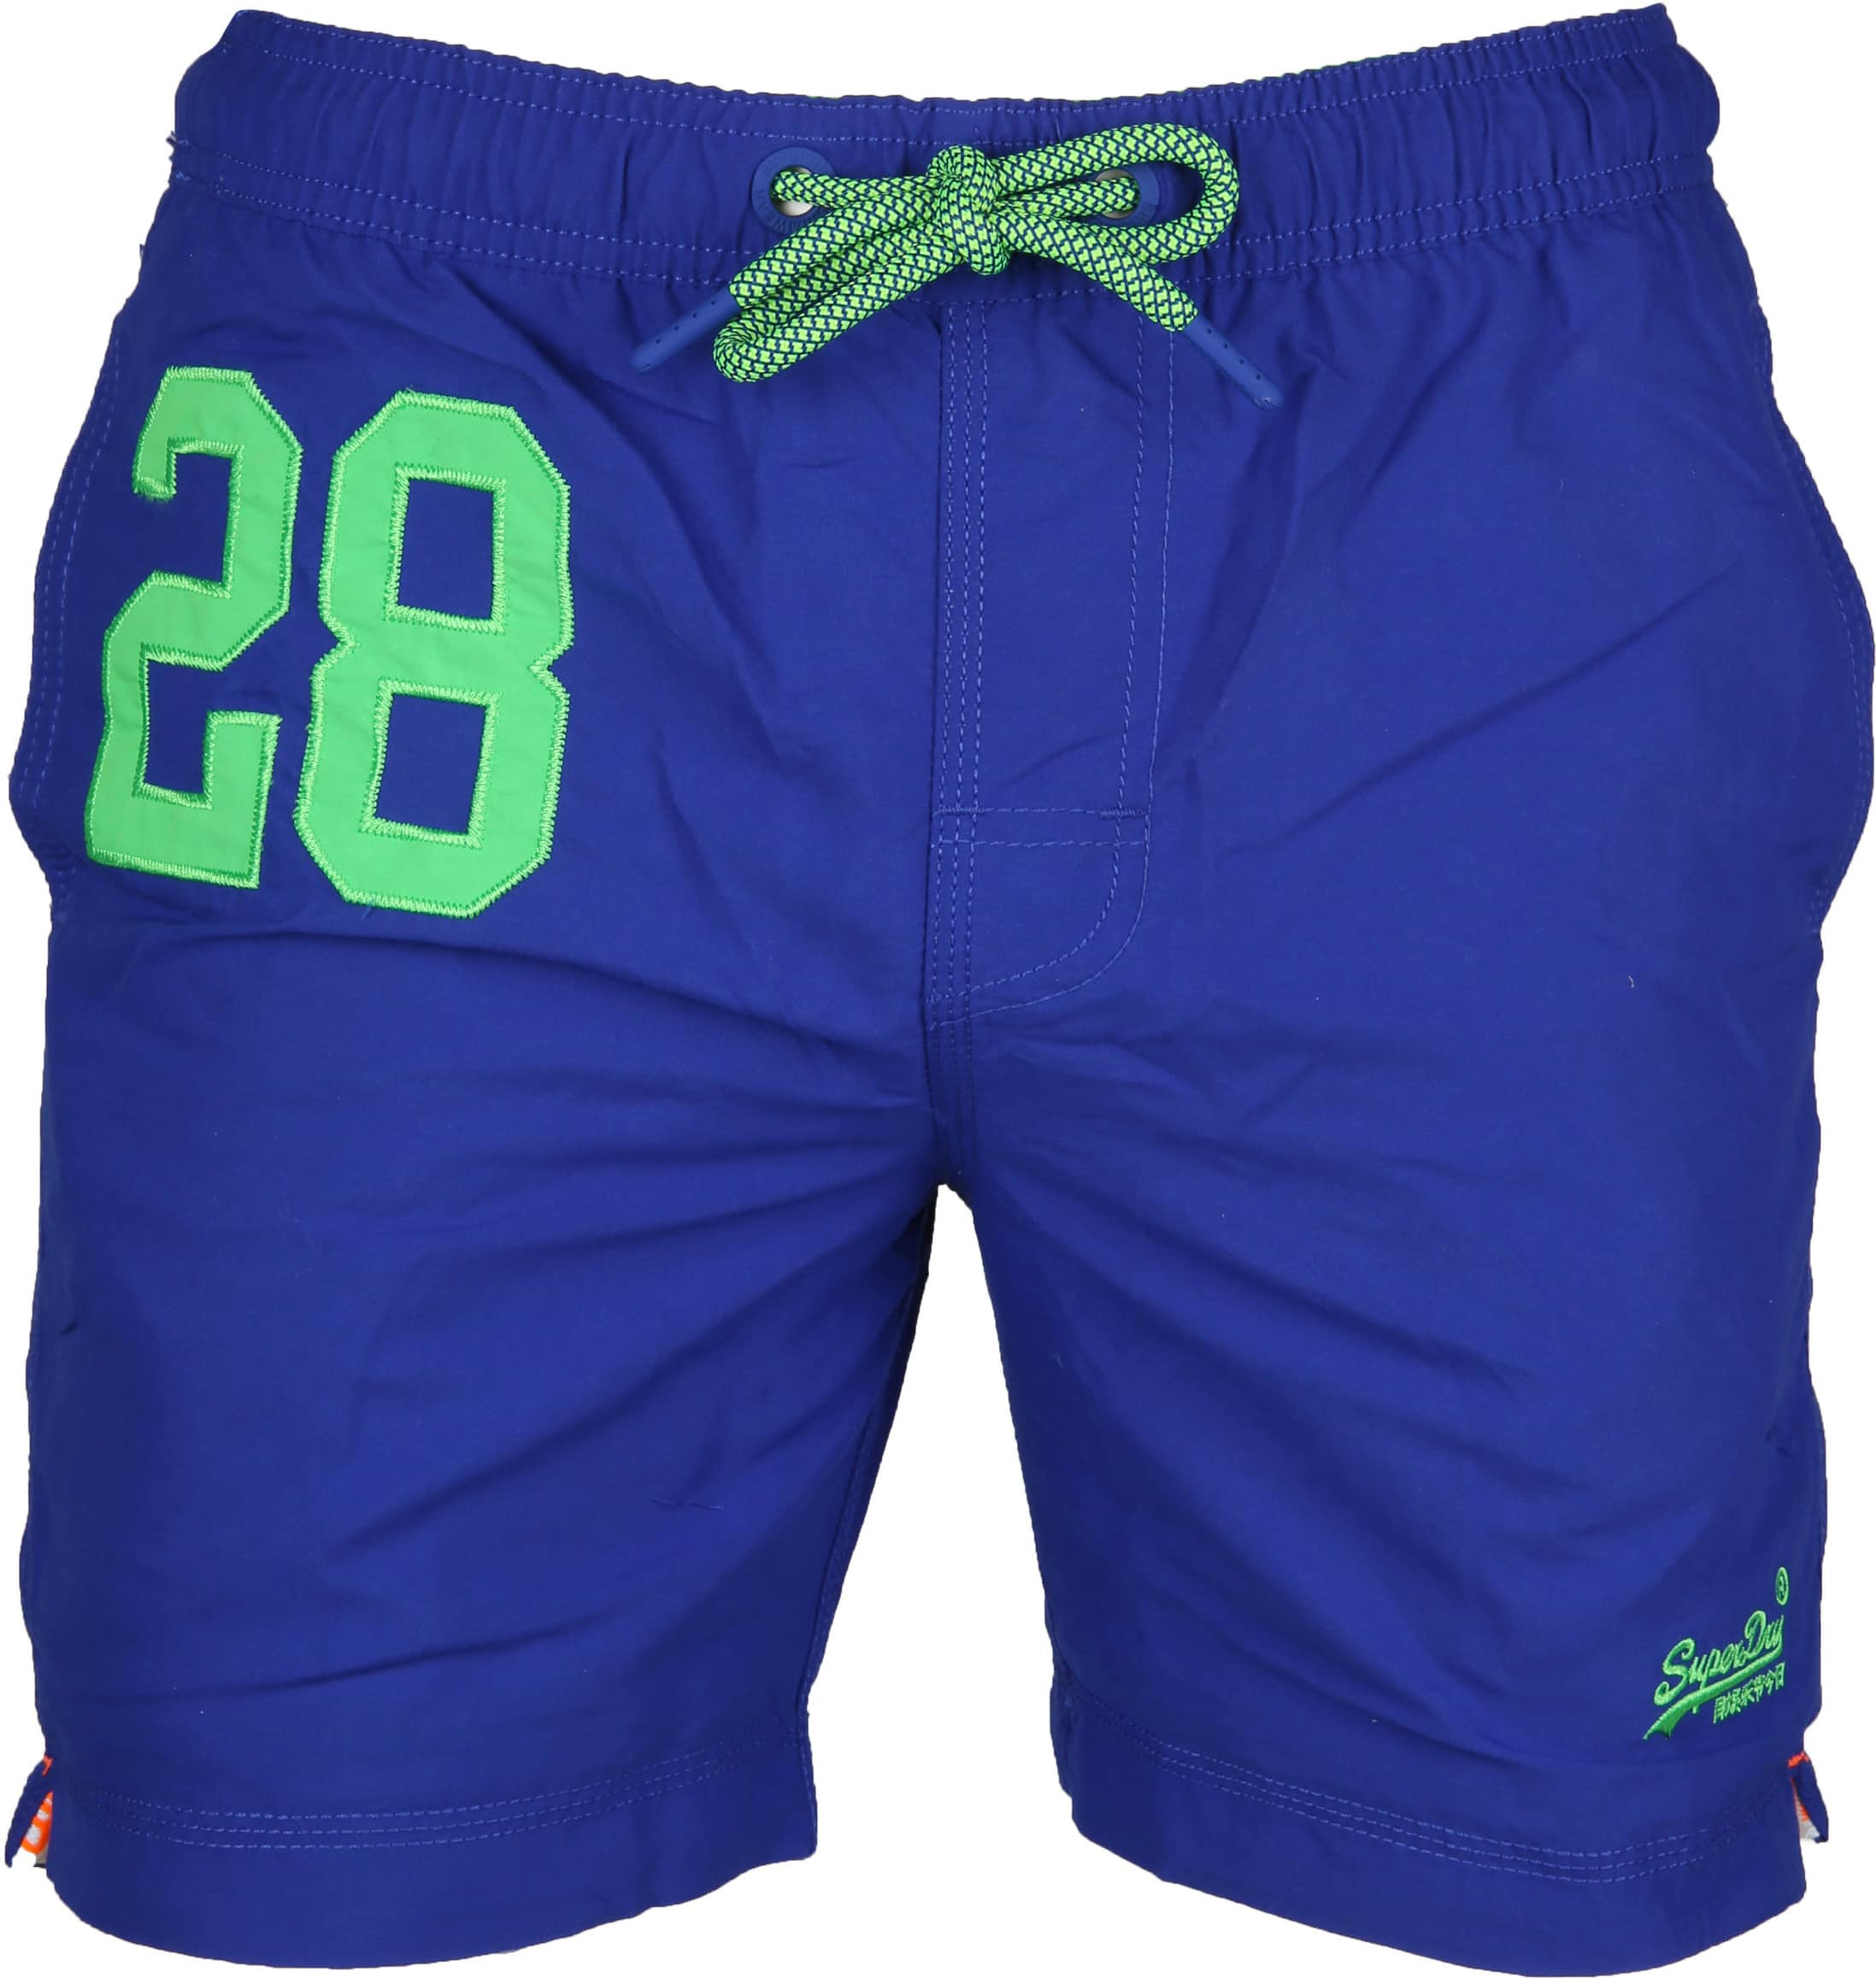 best website 7f6dd 5cf8b Superdry Badeshorts Water Polo Cobalt Blau M30018AT-OM3 ...